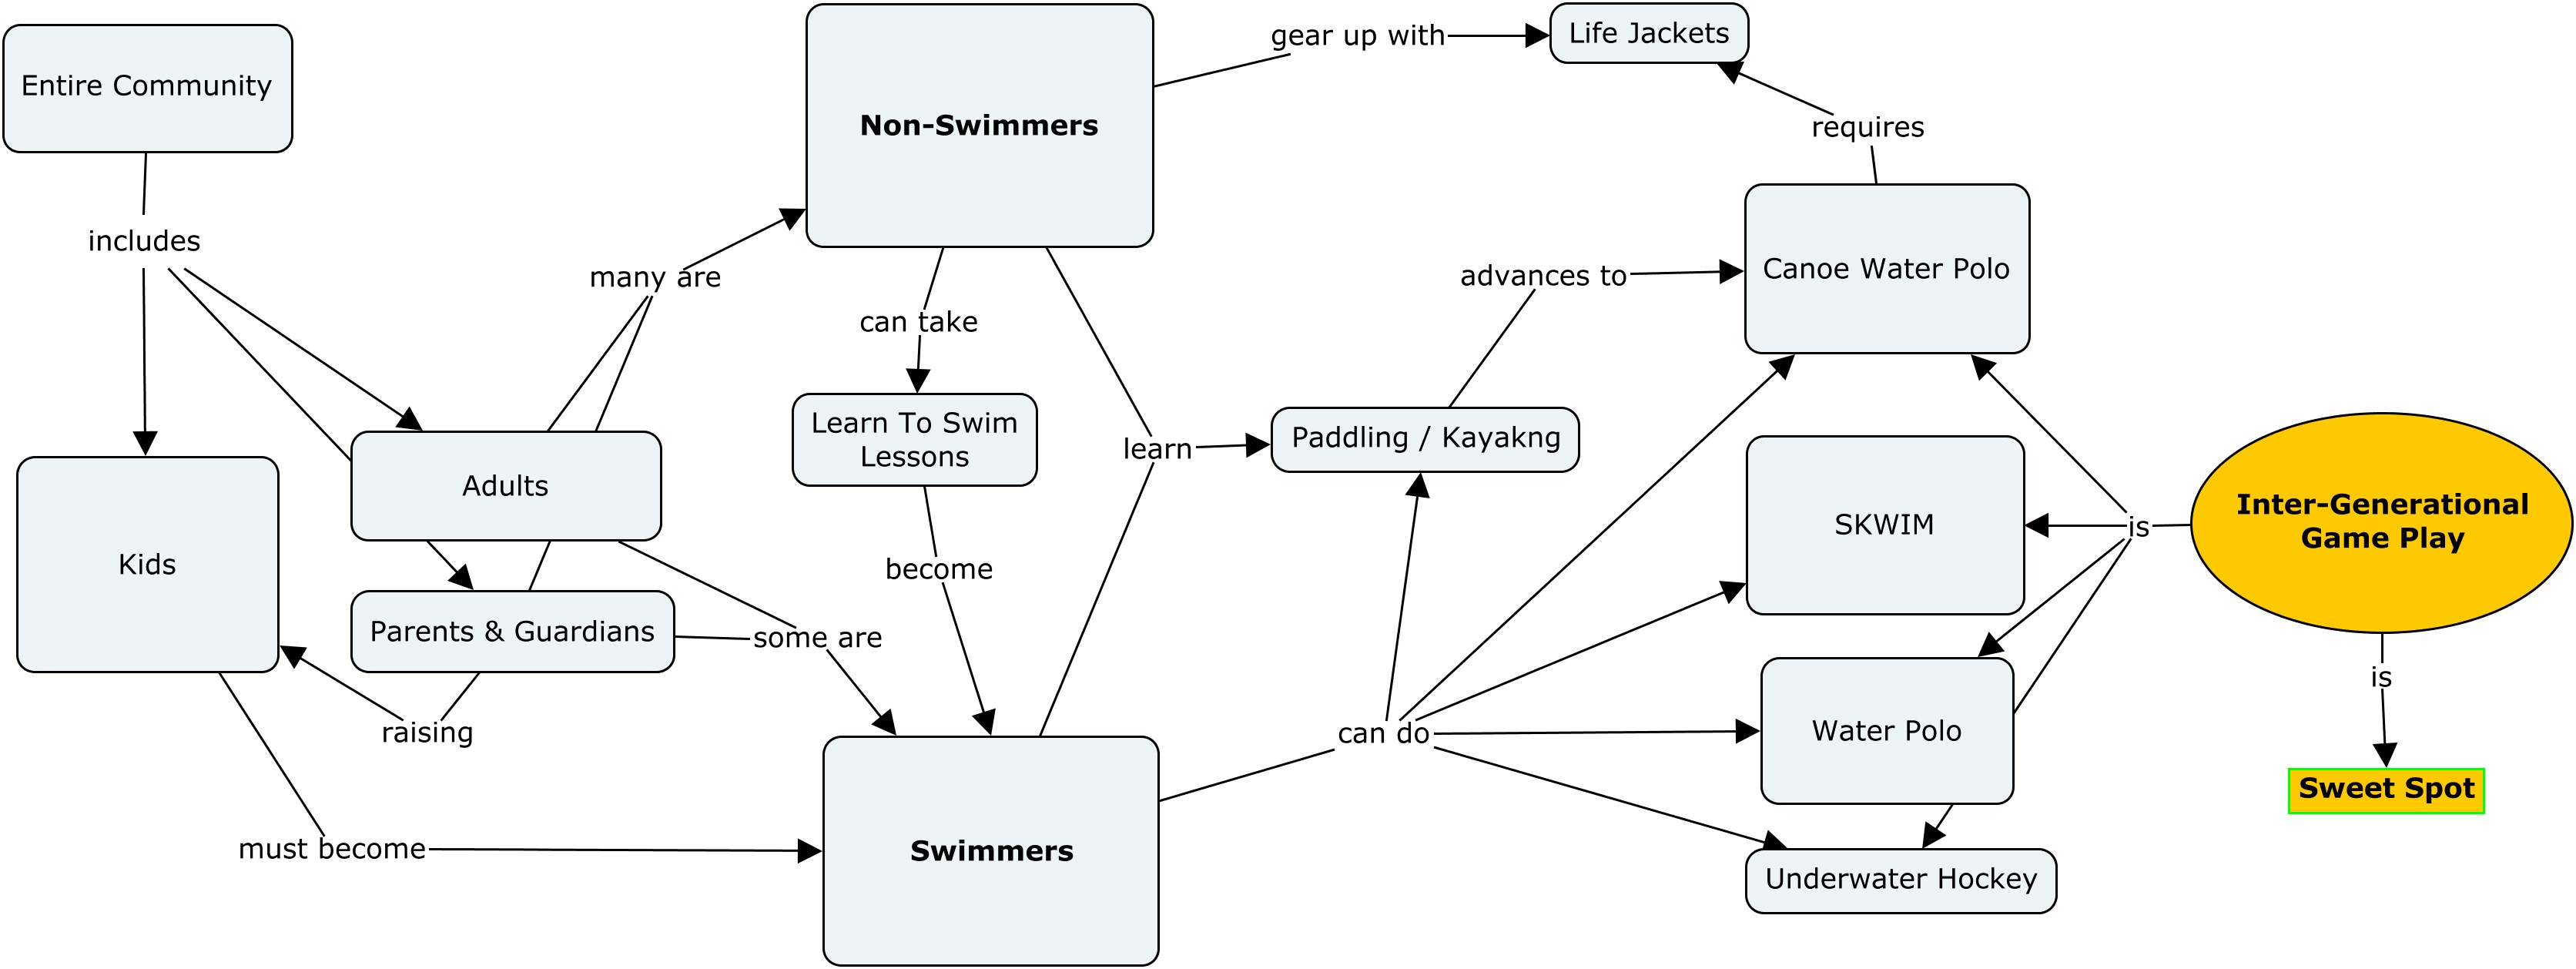 Concept Map of inter-generation canoe water polo